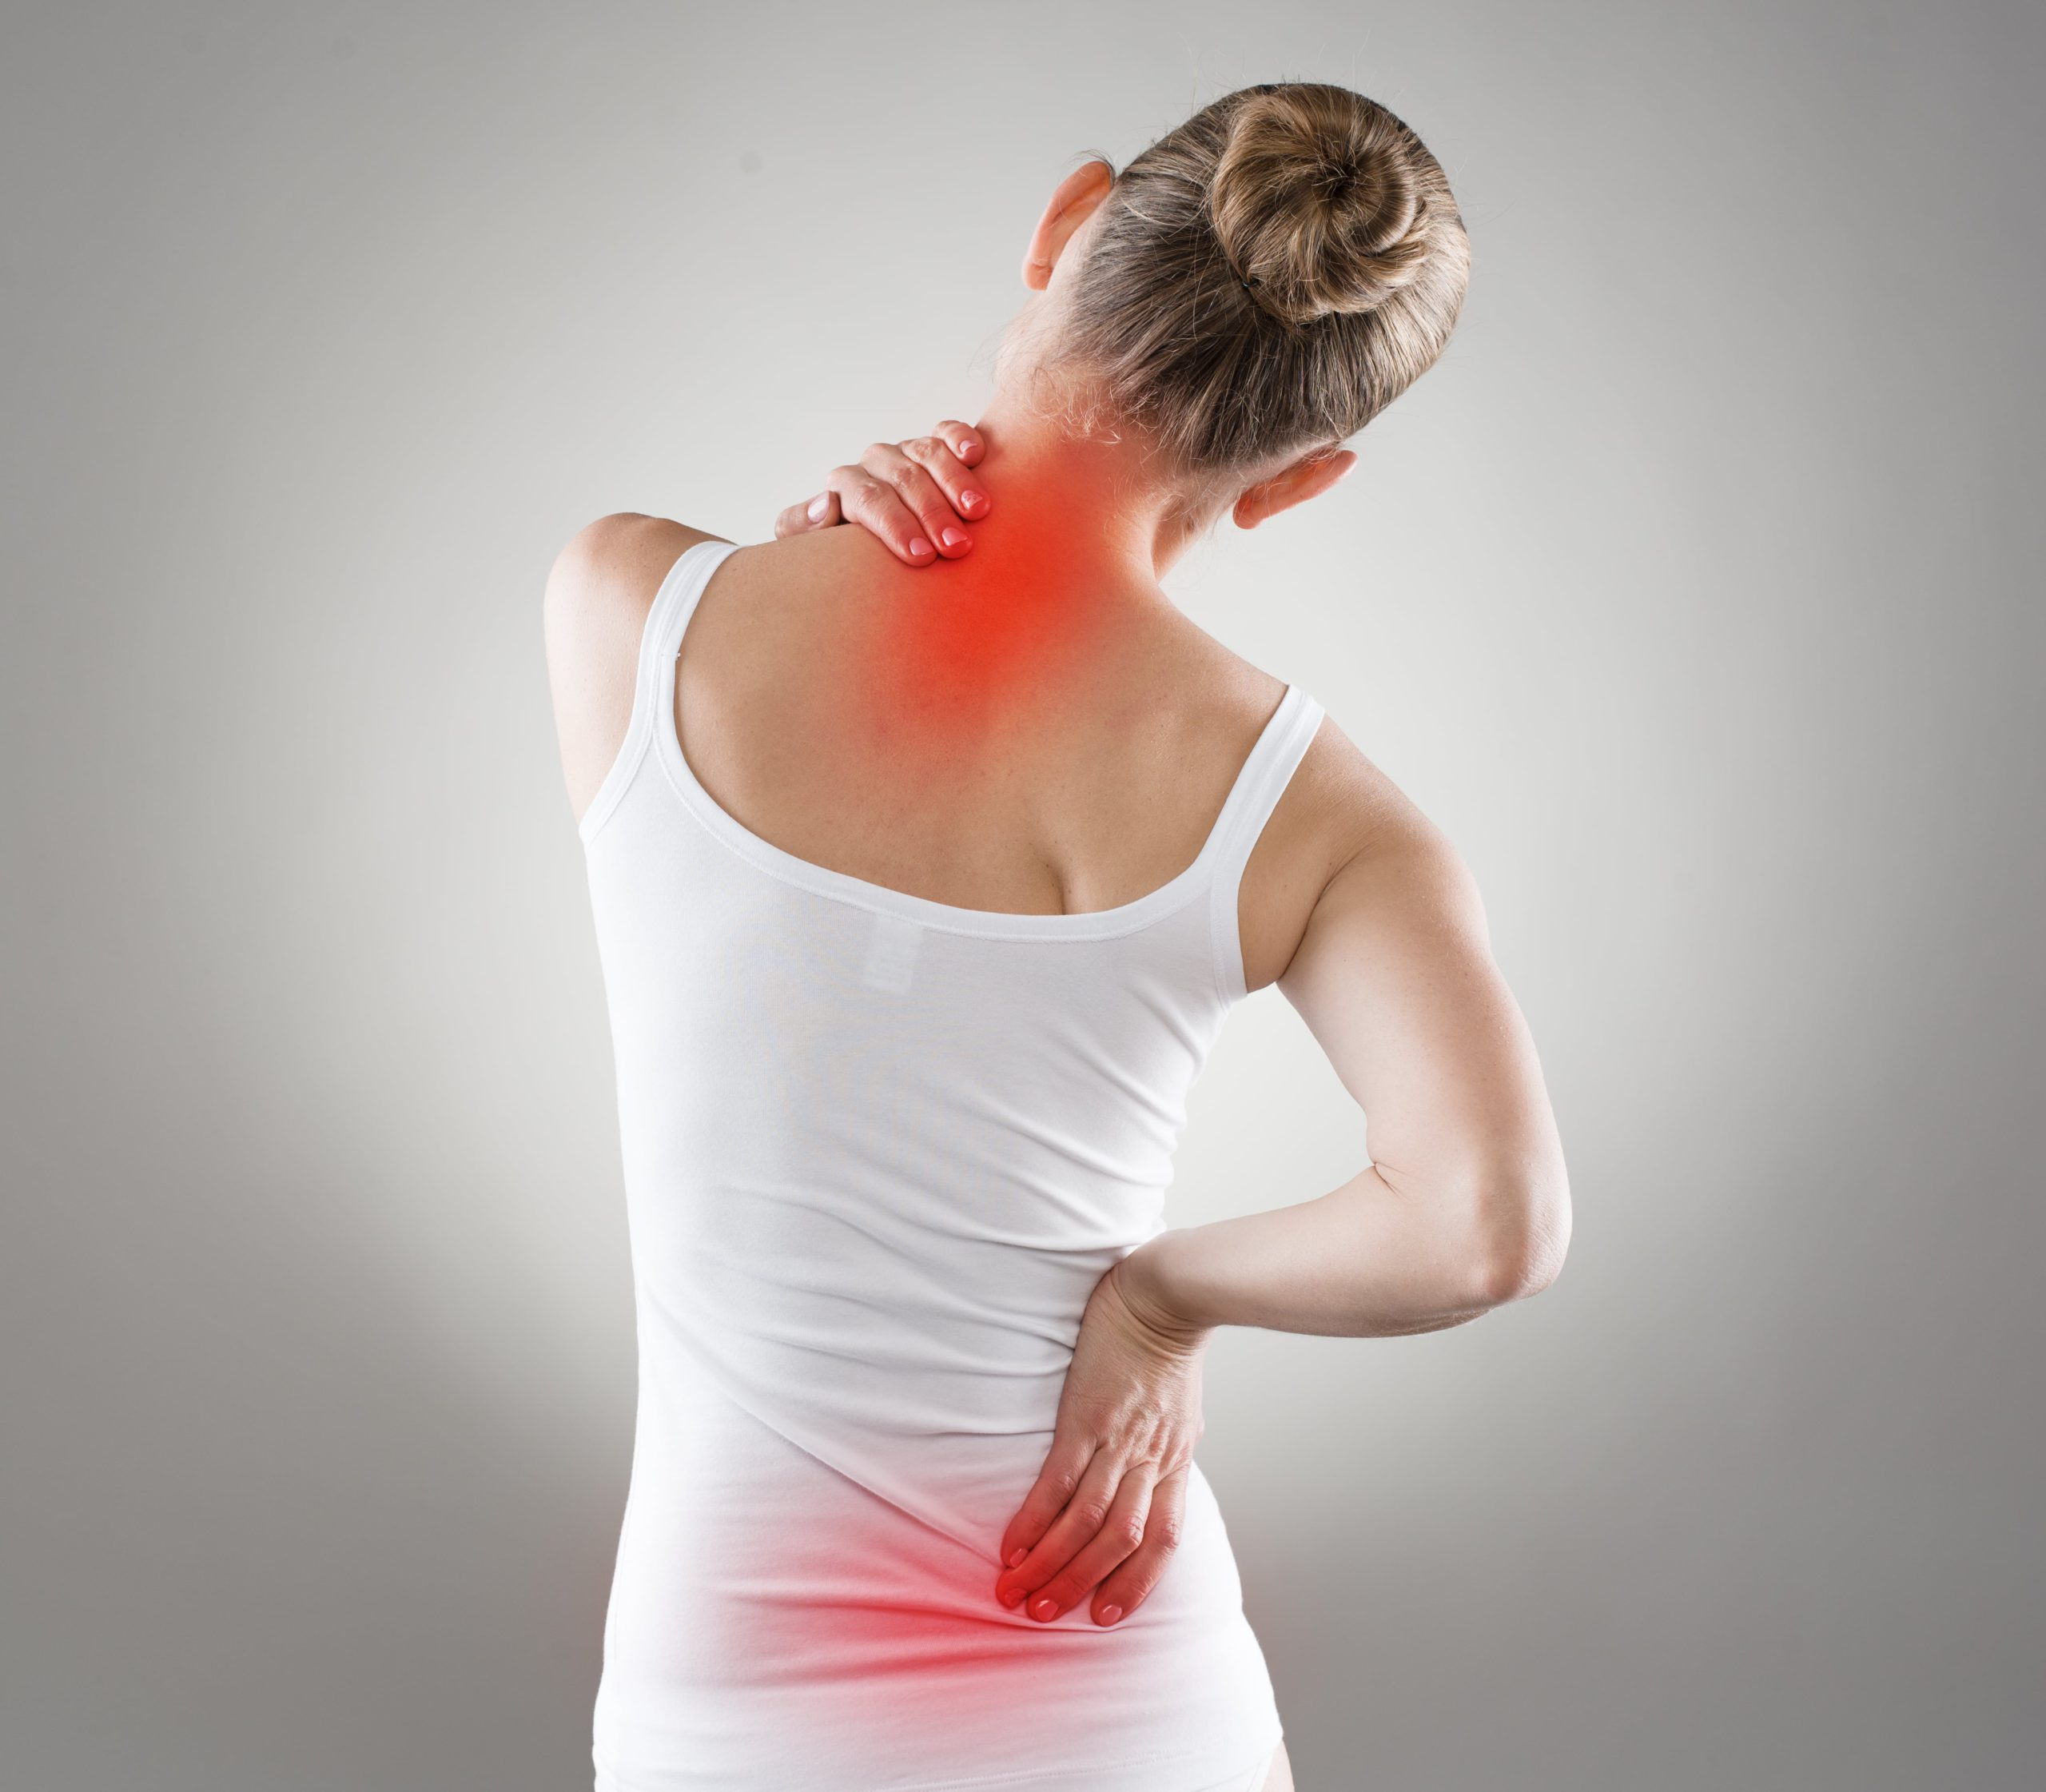 Types of Chronic Joint Pain